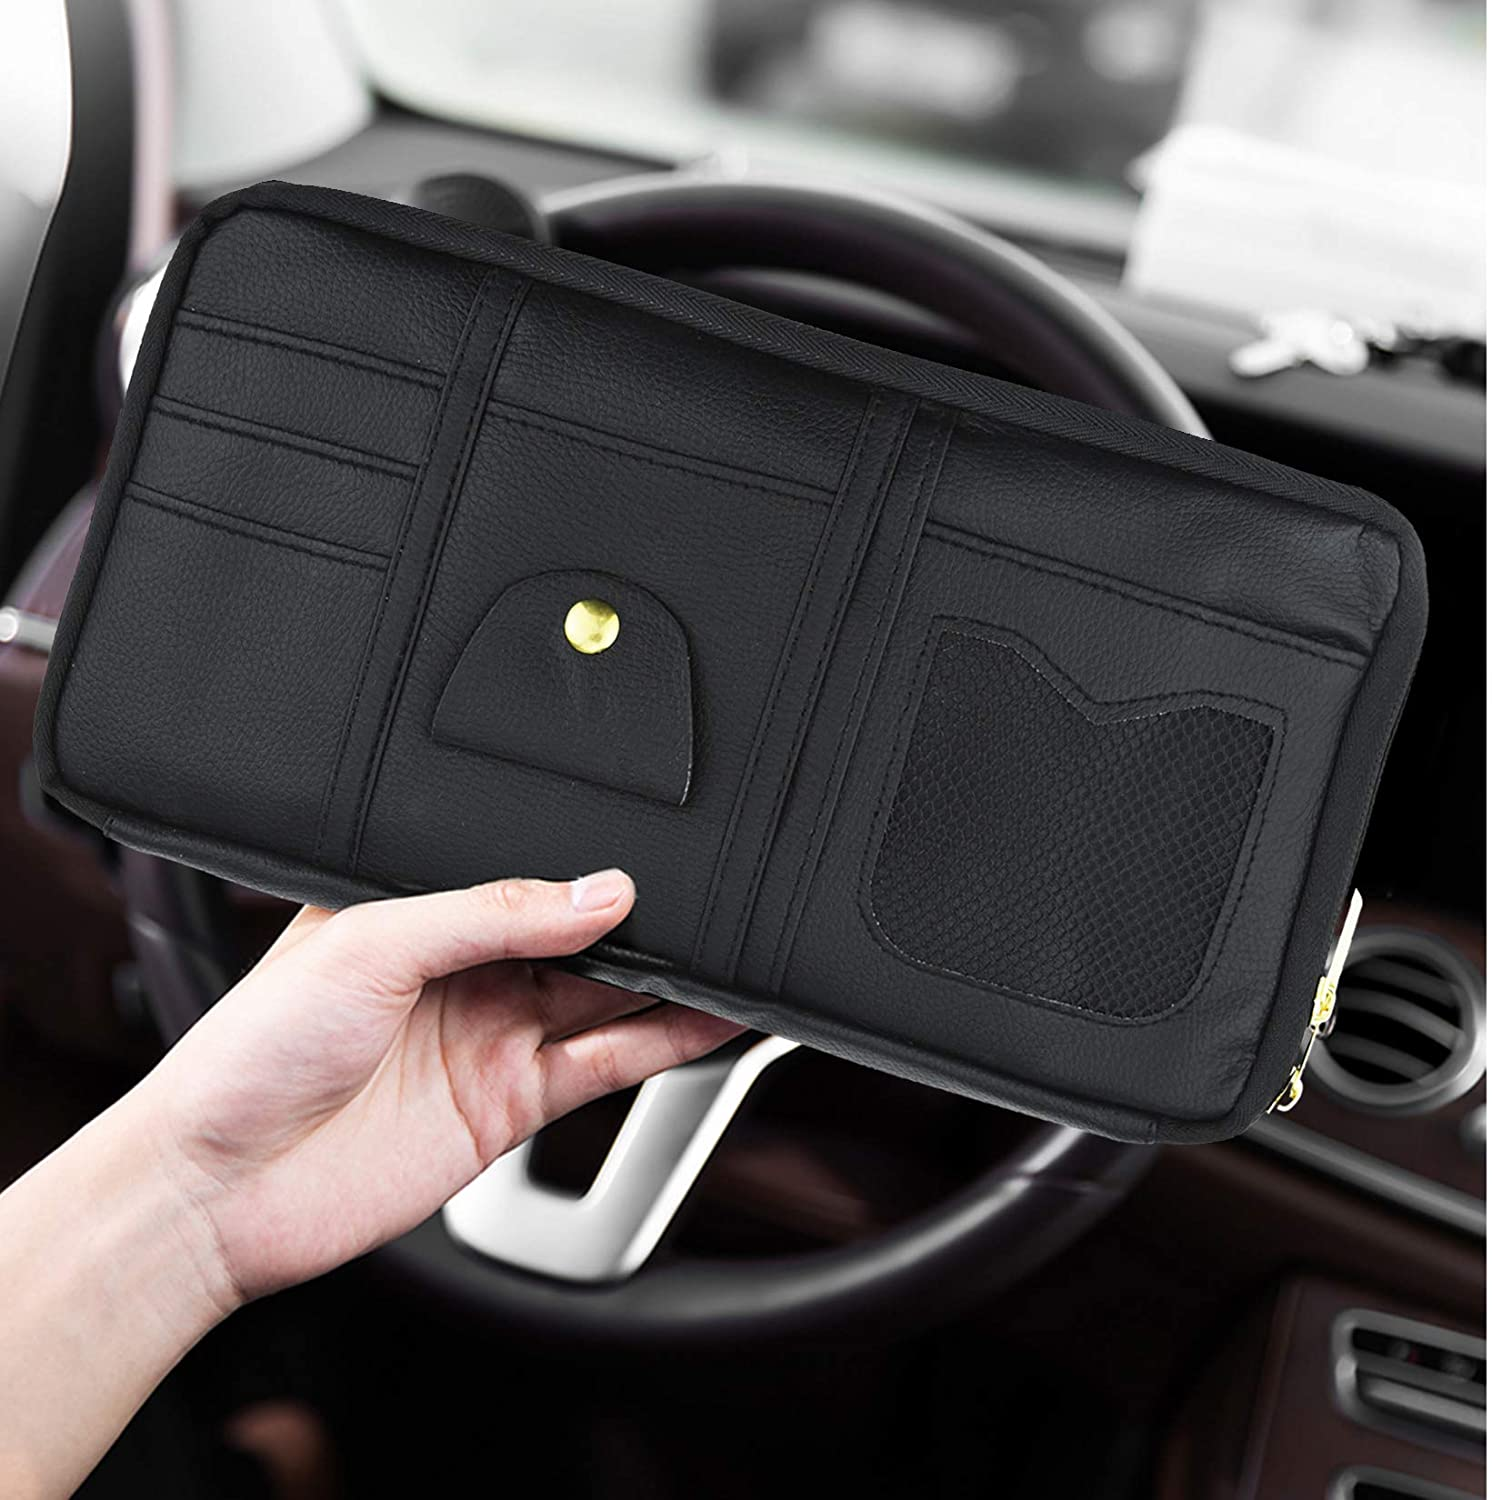 Pistha Car Visor Organizer Truck SUV Leather Storage Holder with Double Zippers and Multiple Pockets